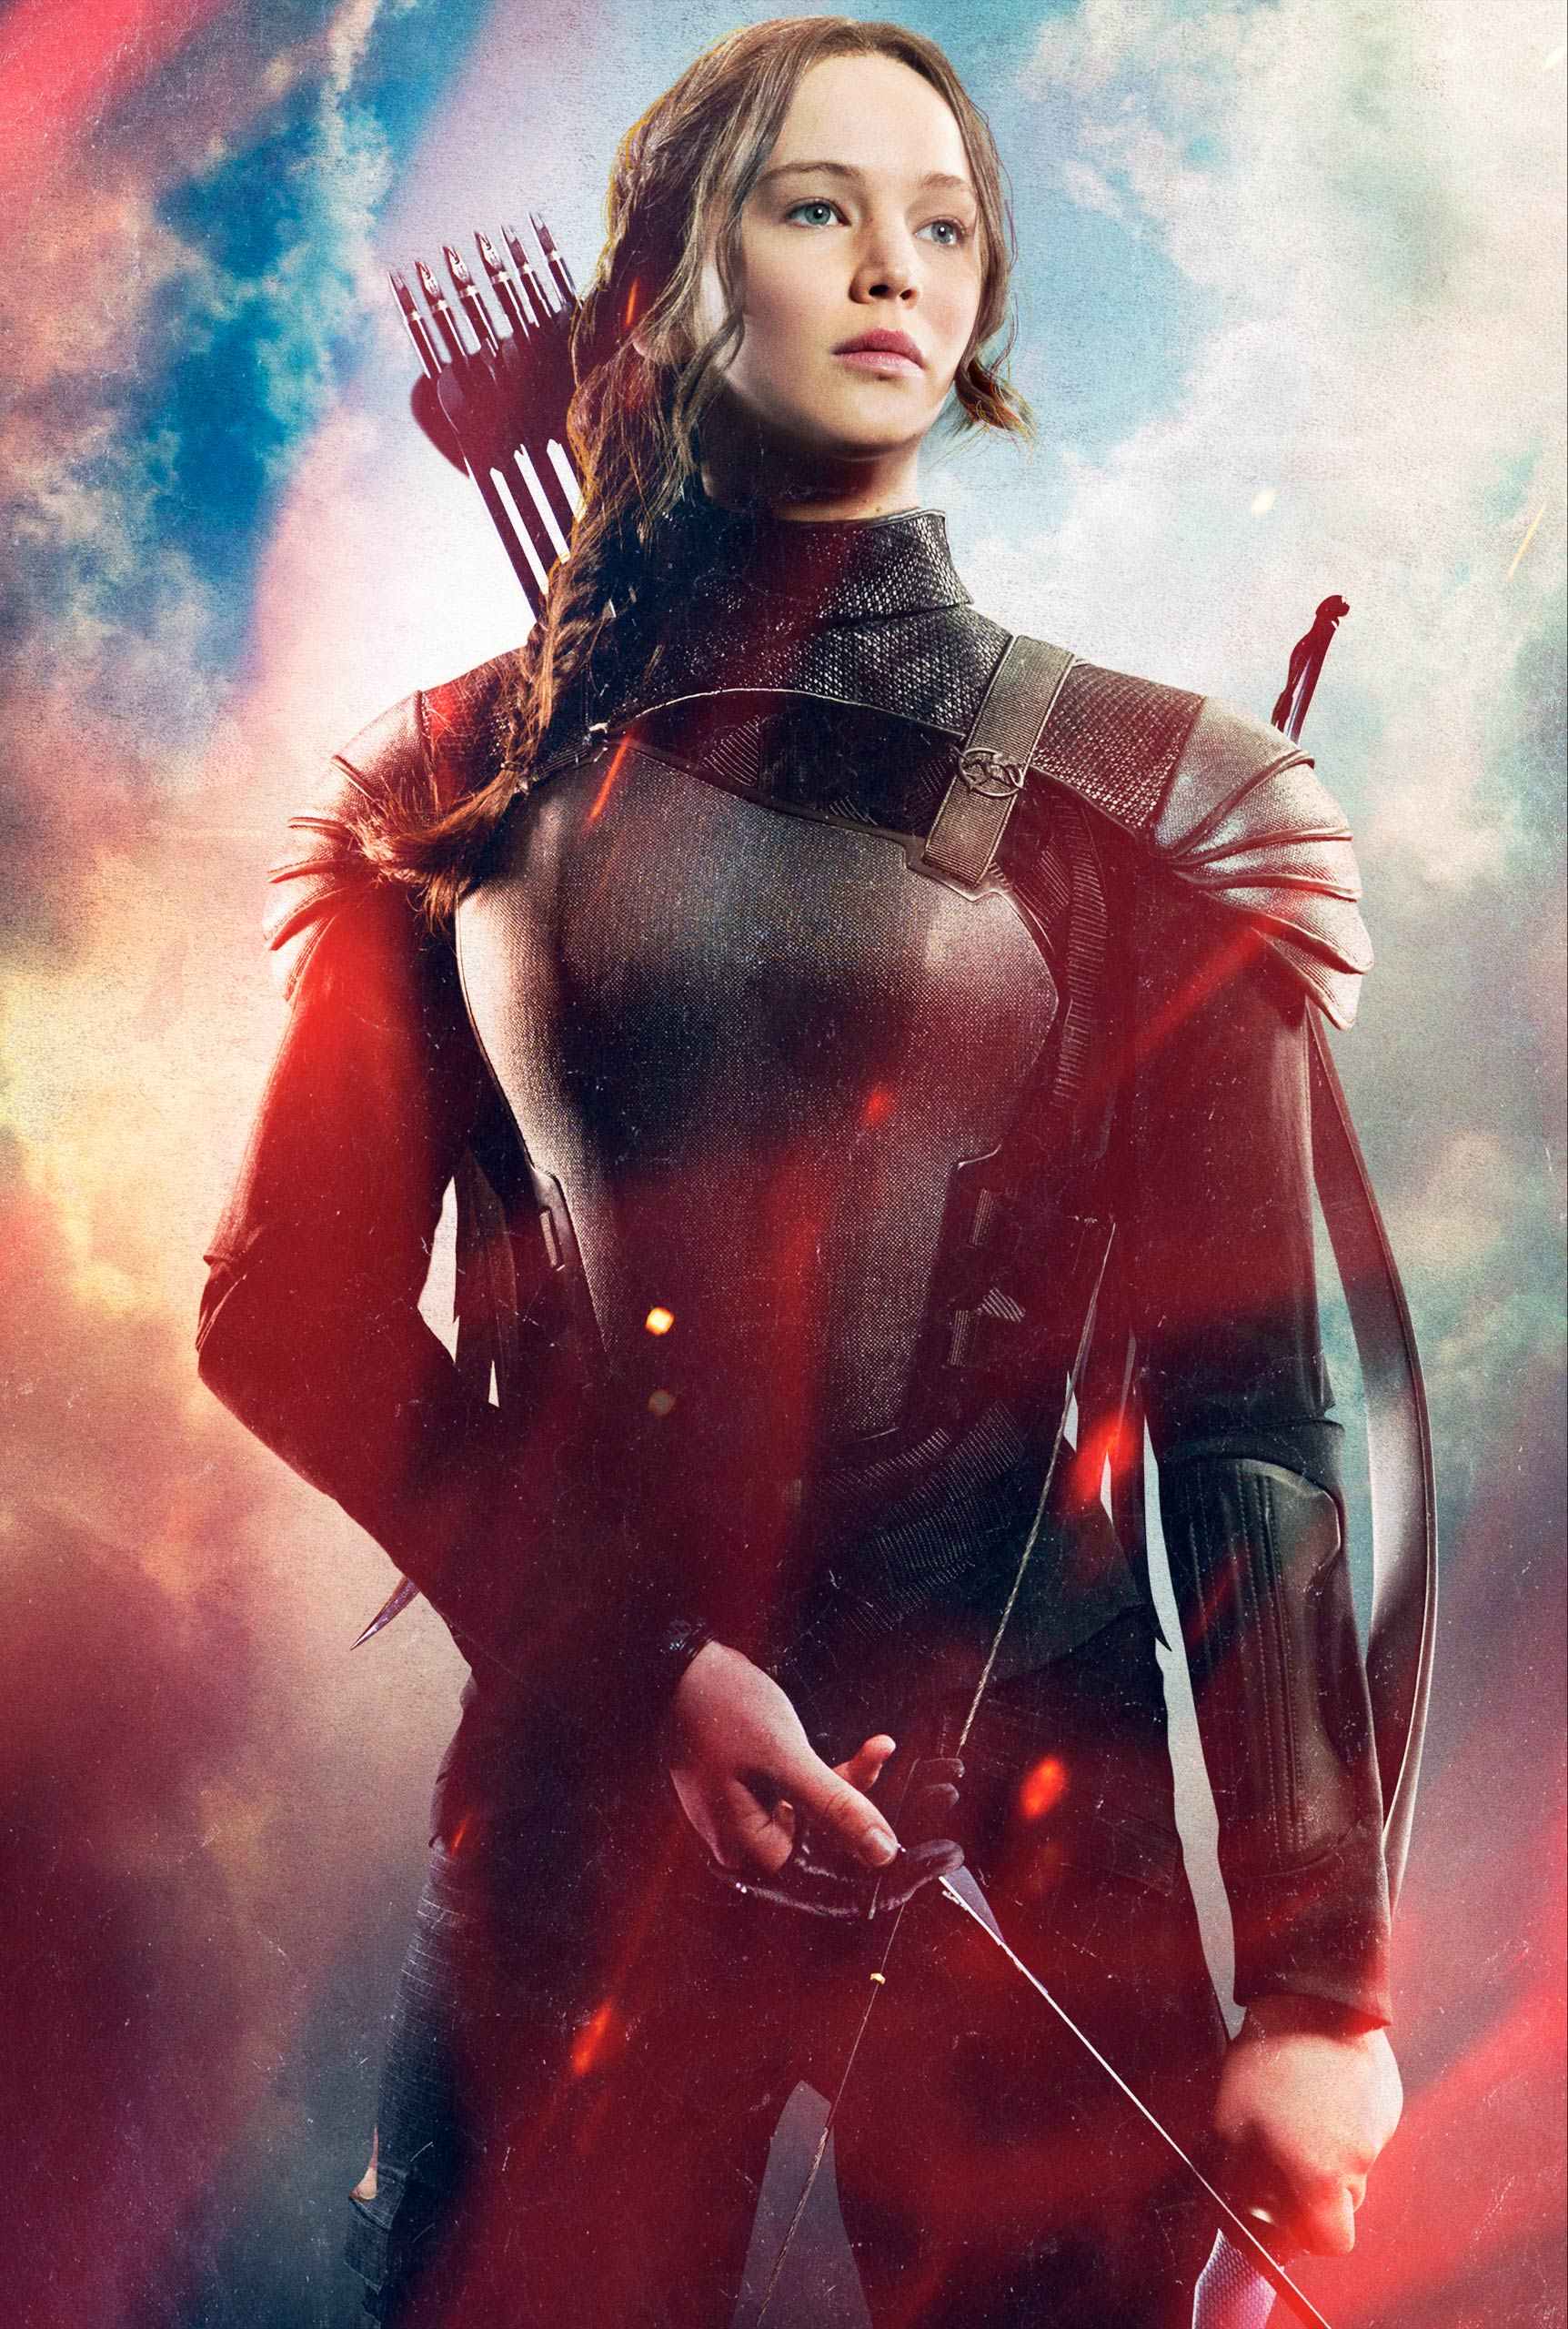 Jennifer Lawrence Is Totally Badass Rocking Her Red